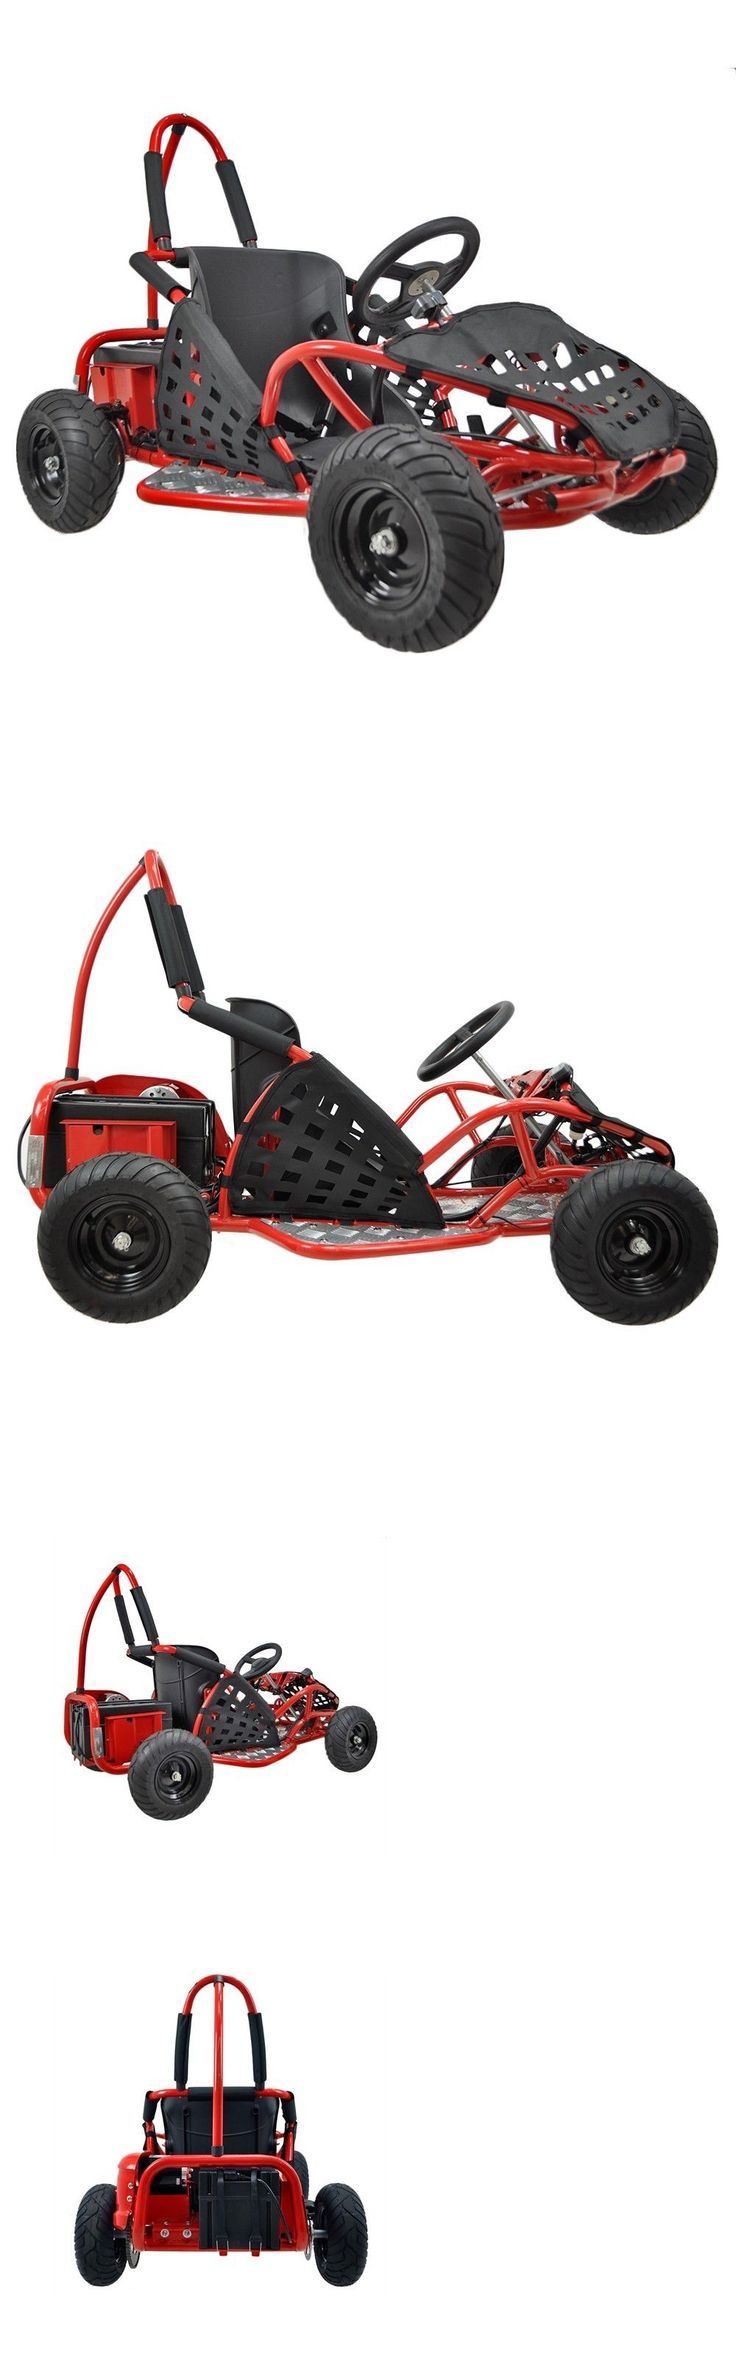 Other Go-Karts Recreational 40152: Go-Bowen 1000 Watt 48 Volt (Epa Approved) Off Road Kids Go Kart W/ Reverse BUY IT NOW ONLY: $679.95